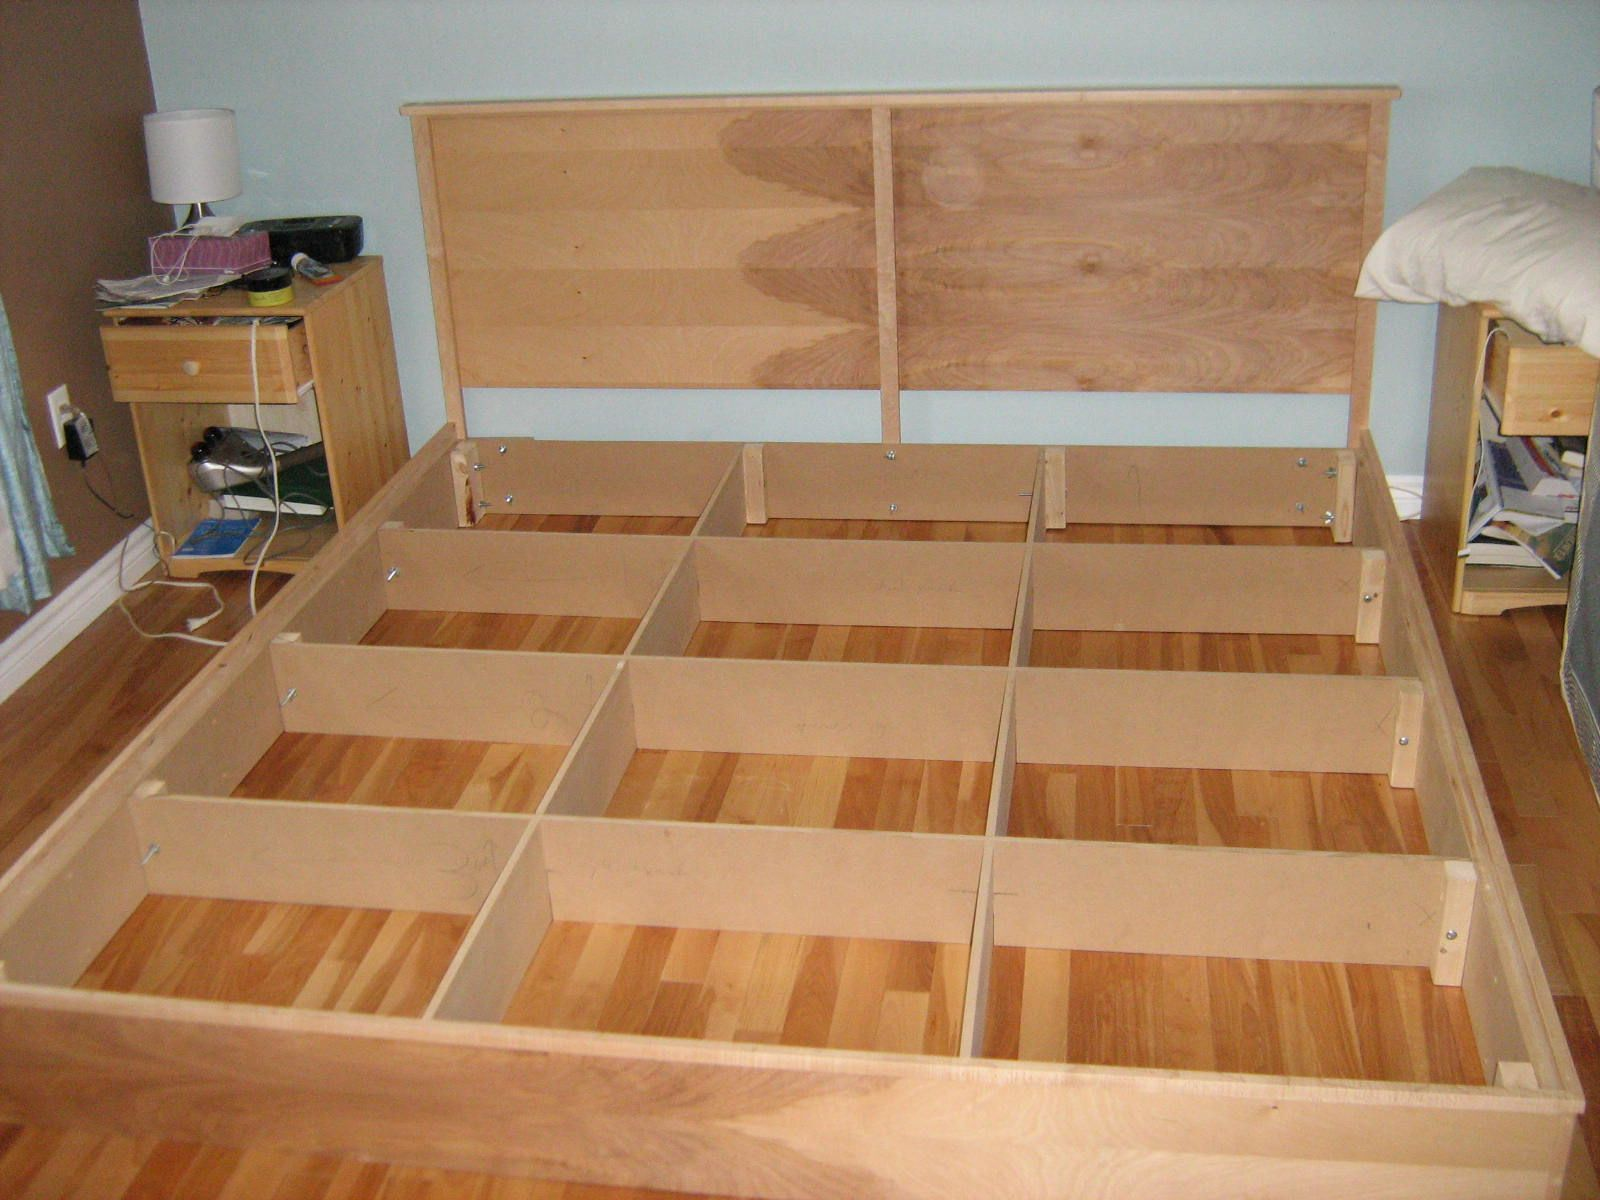 King Platform Bed Plans | BED PLANS DIY & BLUEPRINTS